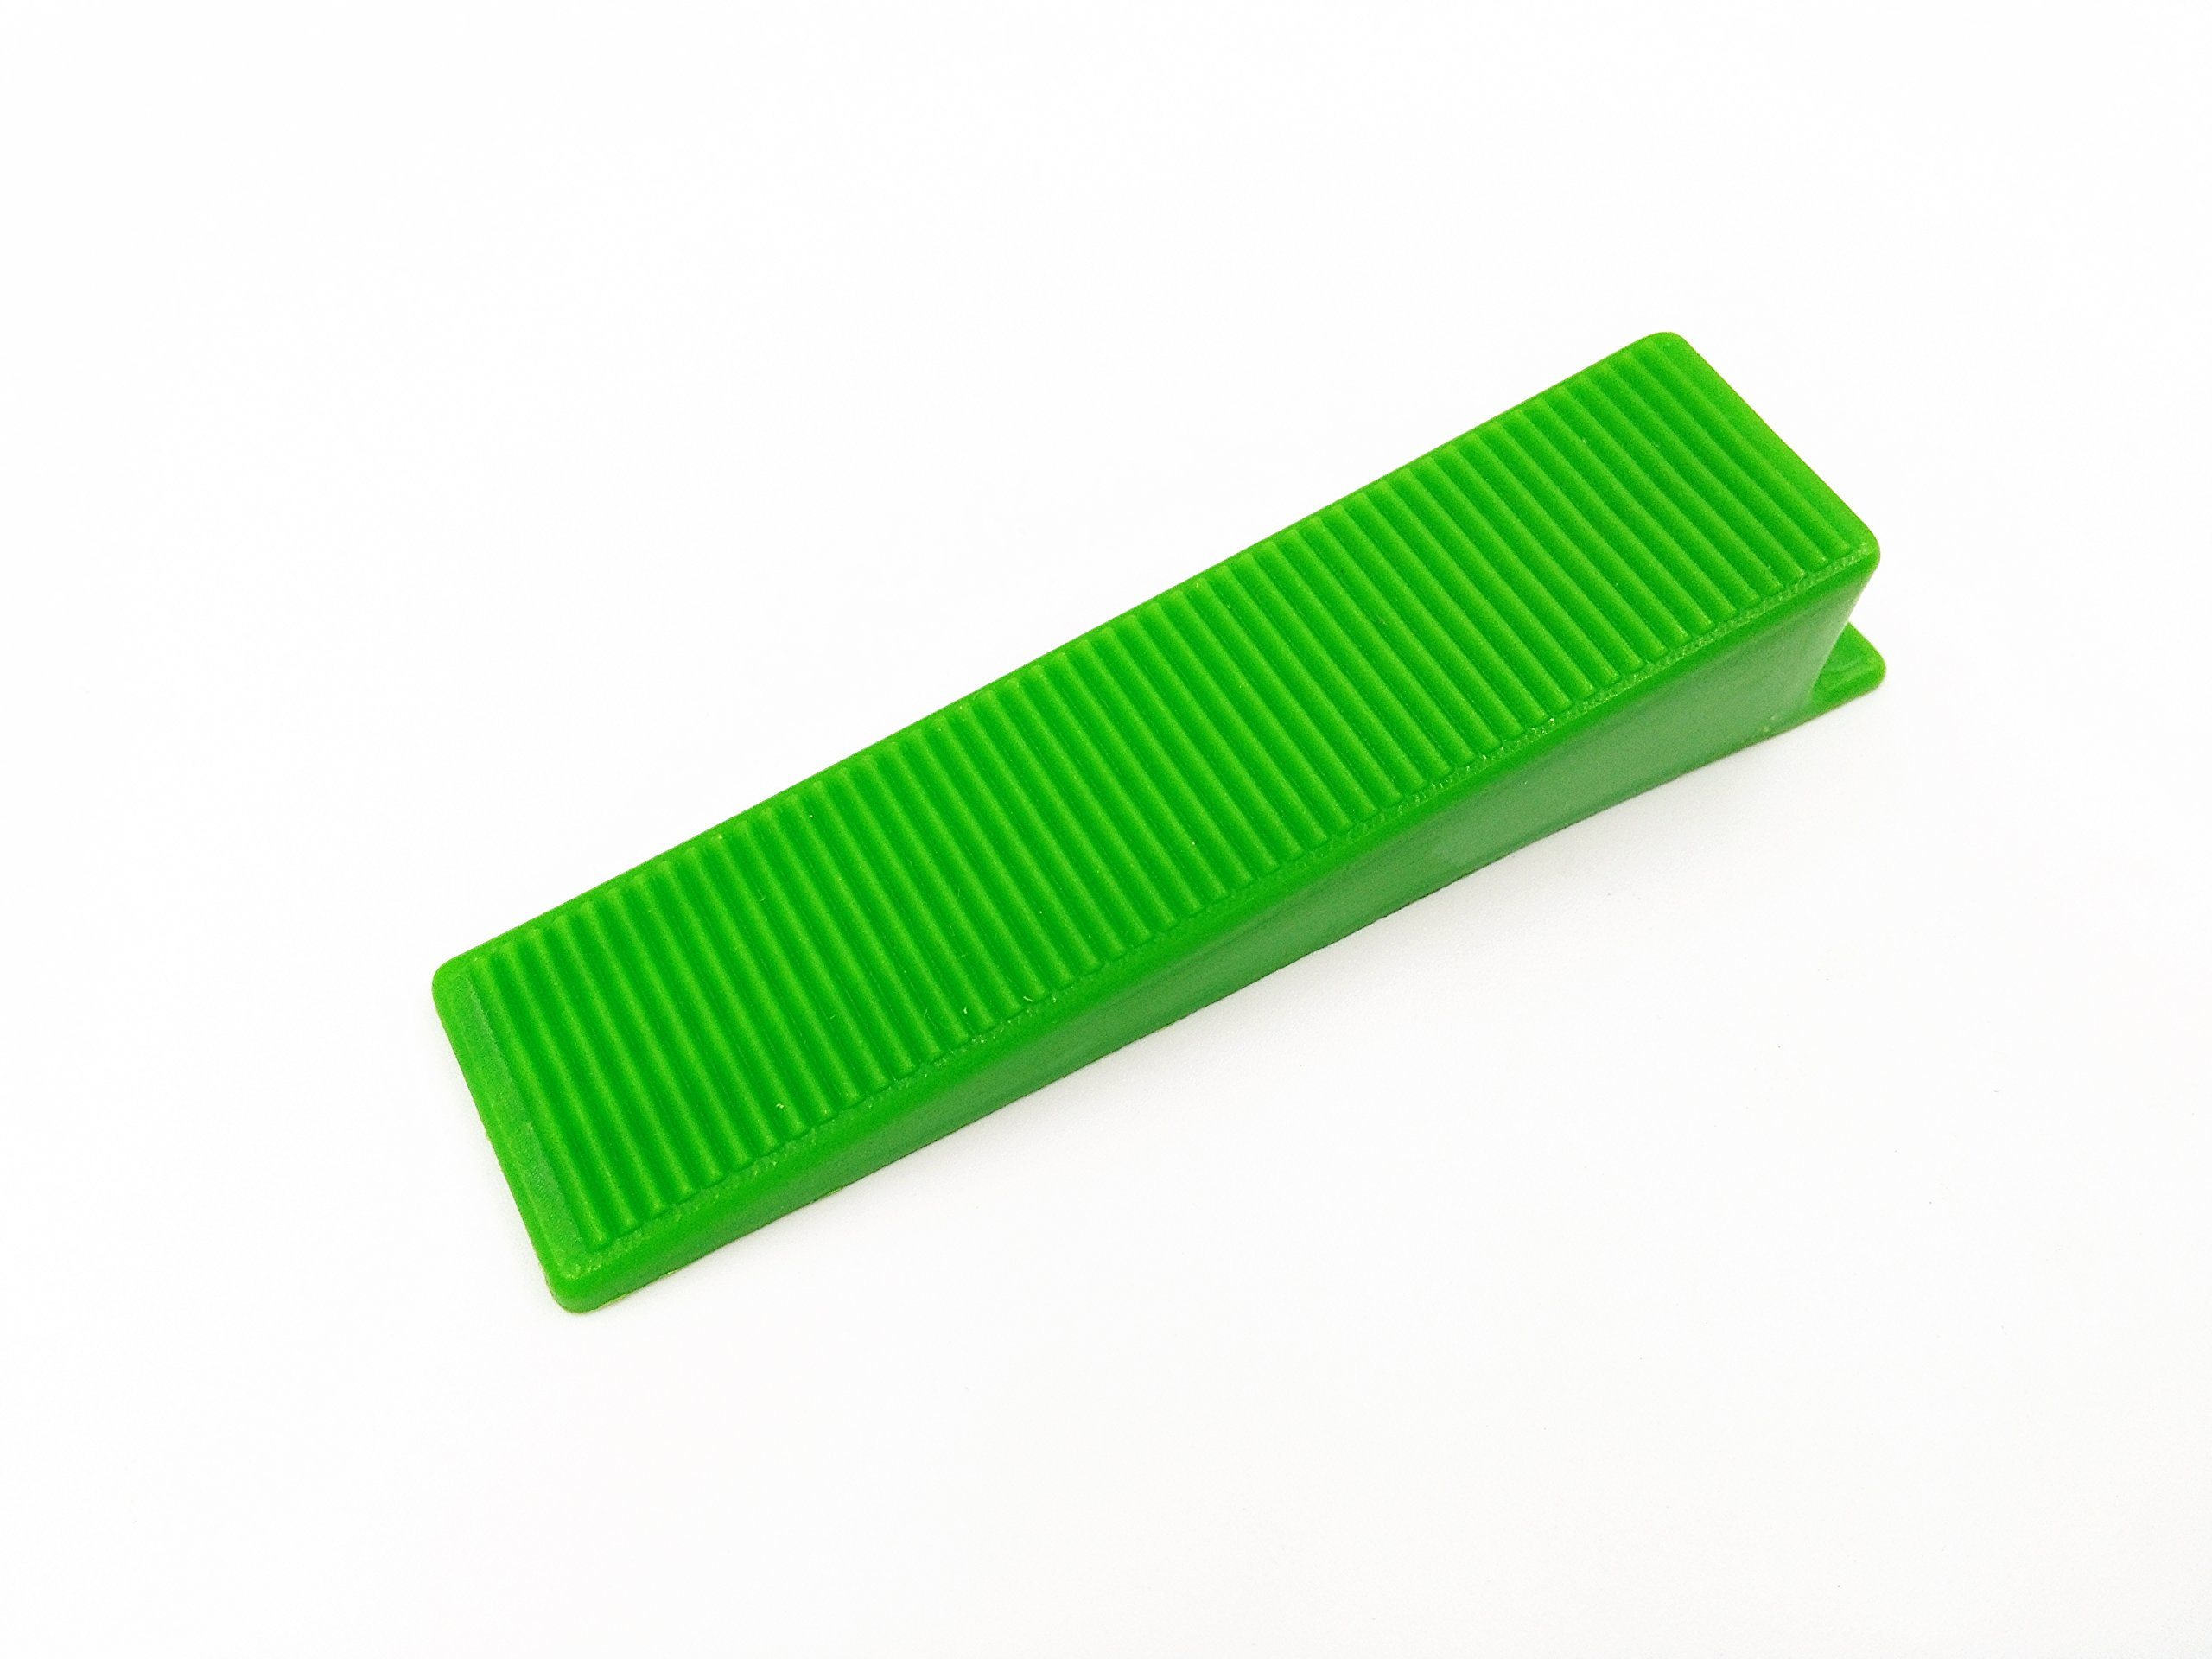 Tipu 100-Pcs Tile Leveling System Wedges, Wall / Floor Balance Wedge, Tile Laying Wedge, Green